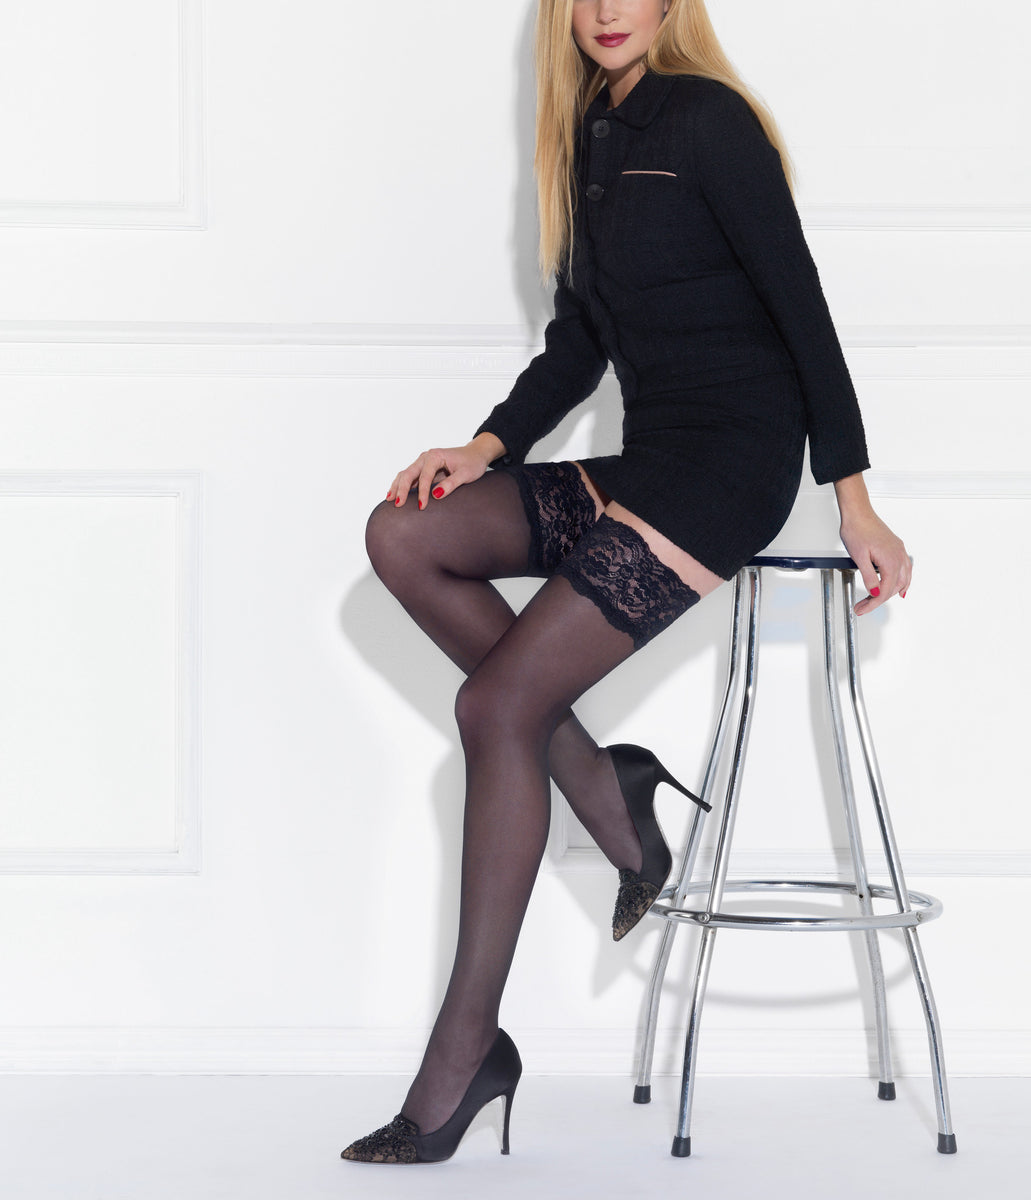 Le Bourget Hold Ups and Tights at Mayfair Stockings : Hold